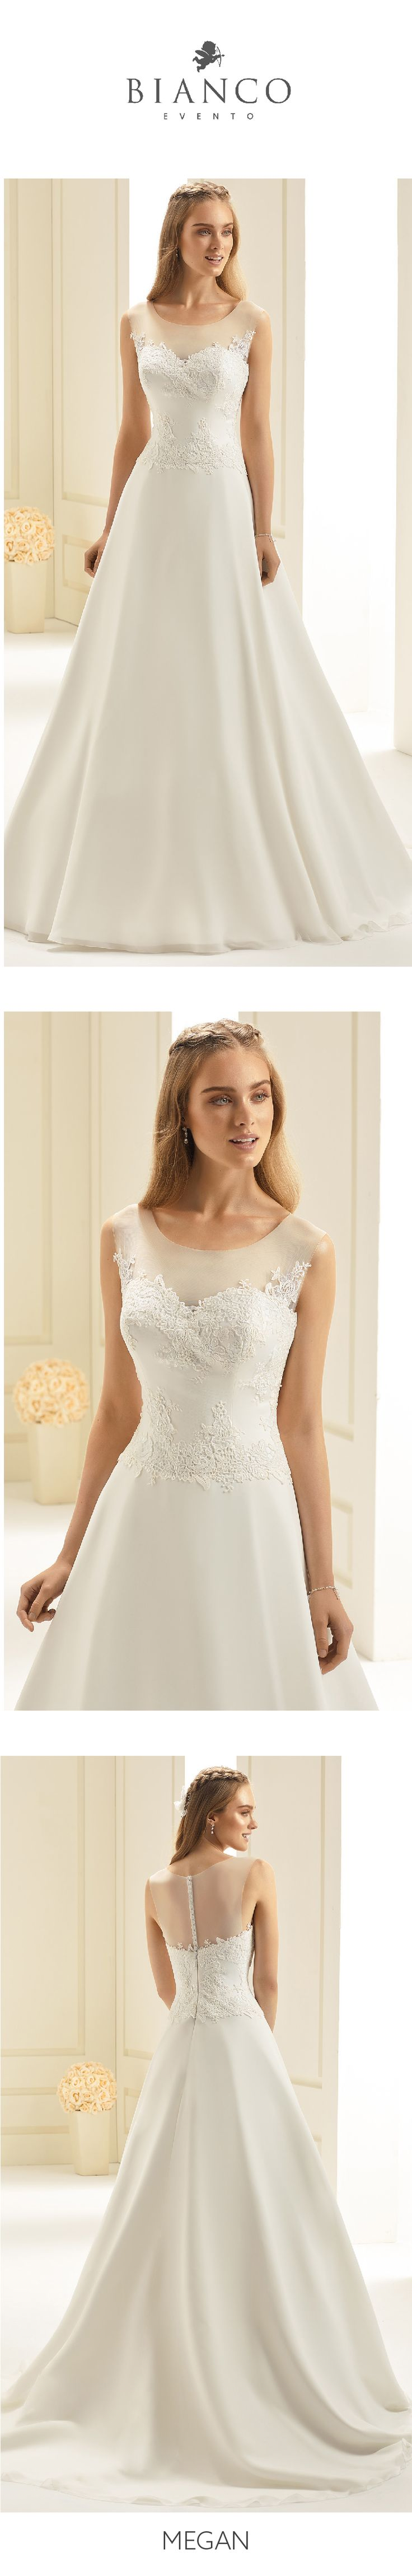 Discover our delicate styles from #NewCollection2018 on www.bianco-evento.com #biancoevento #biancoevento2018 #weddingdress #bridetobe